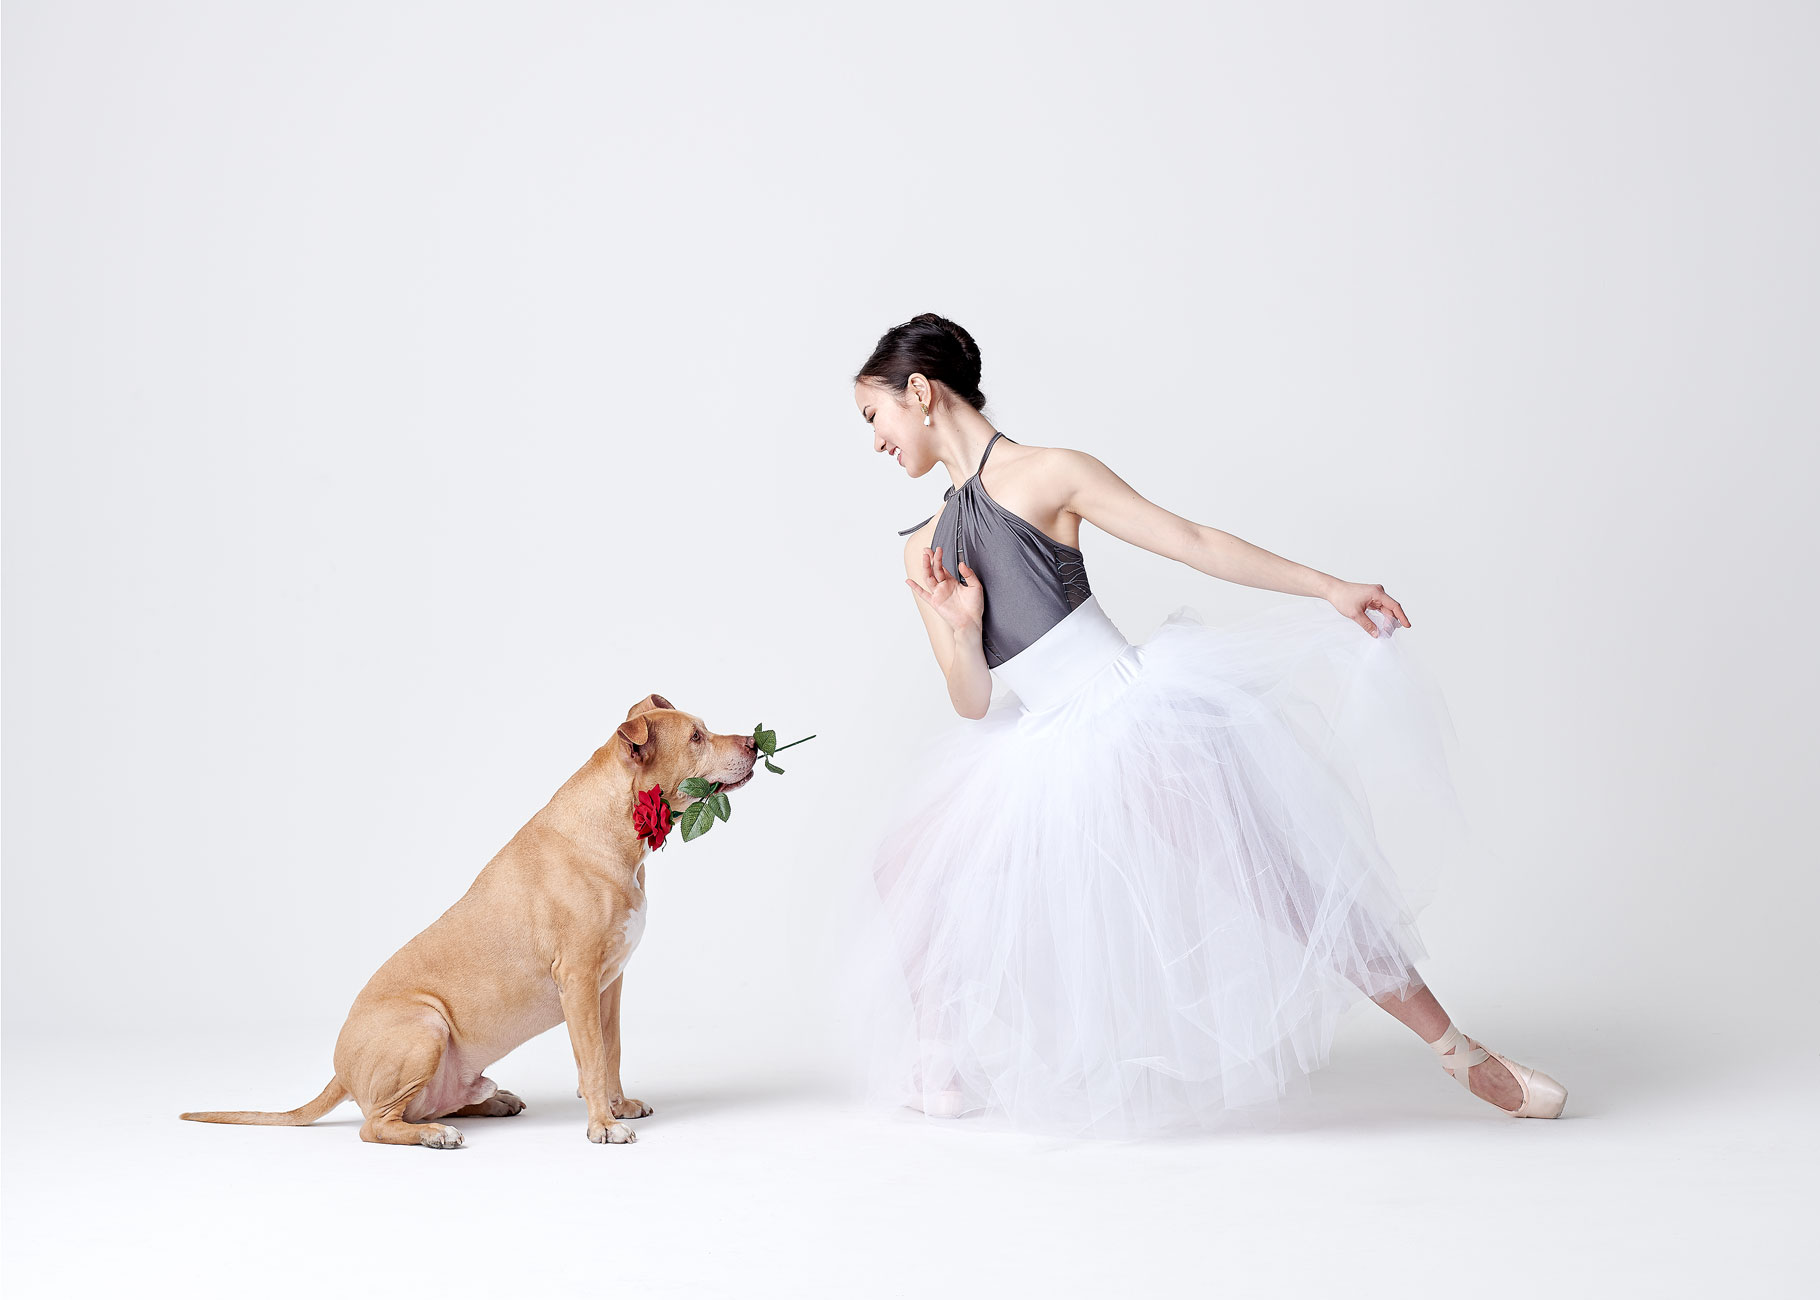 Dancers_and_Dogs_05